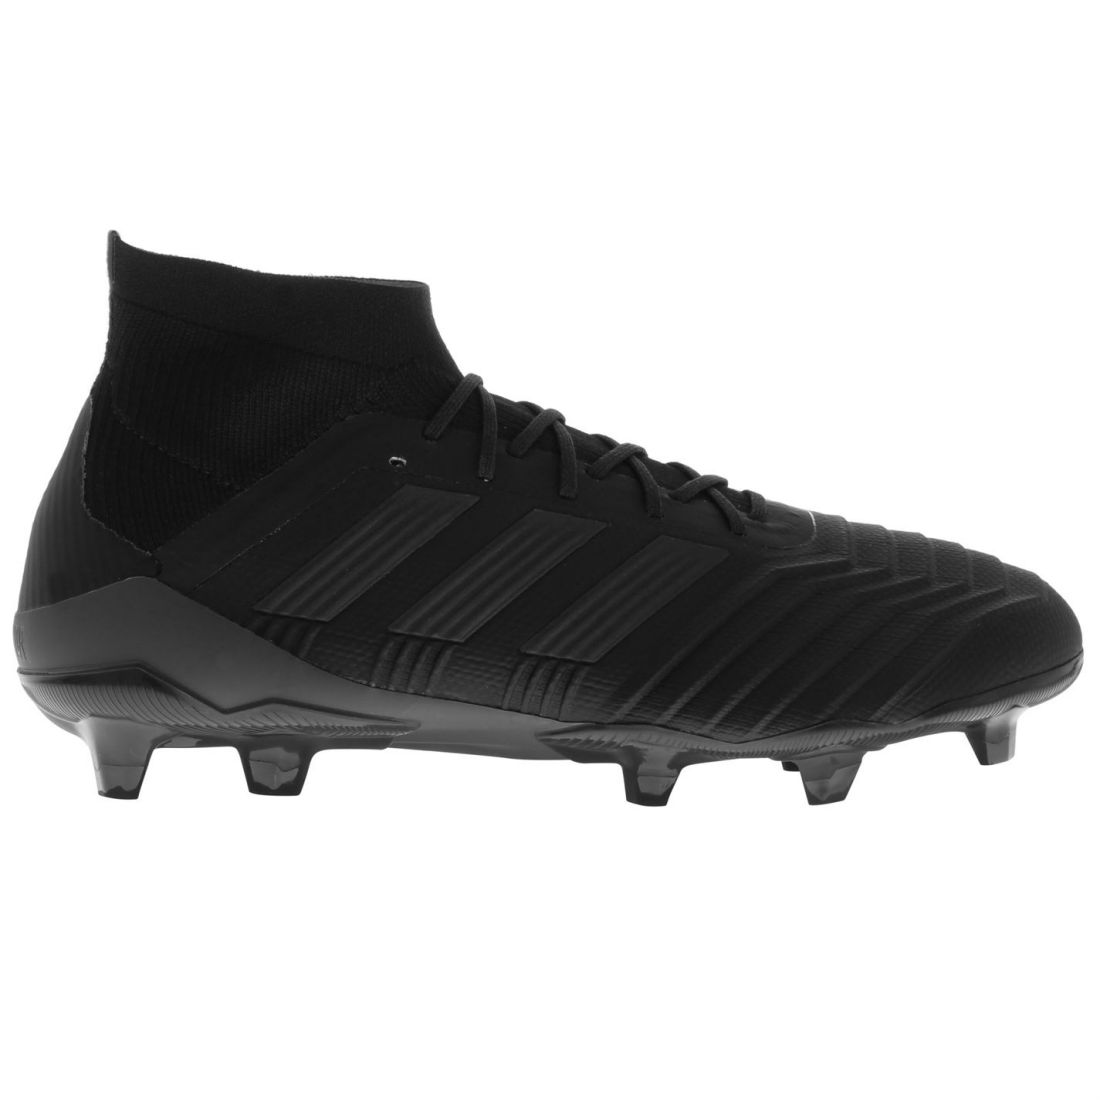 f57ba630be61 adidas Mens Predator 18.1 FG Football Boots Firm Ground Lace Up Studs Knit